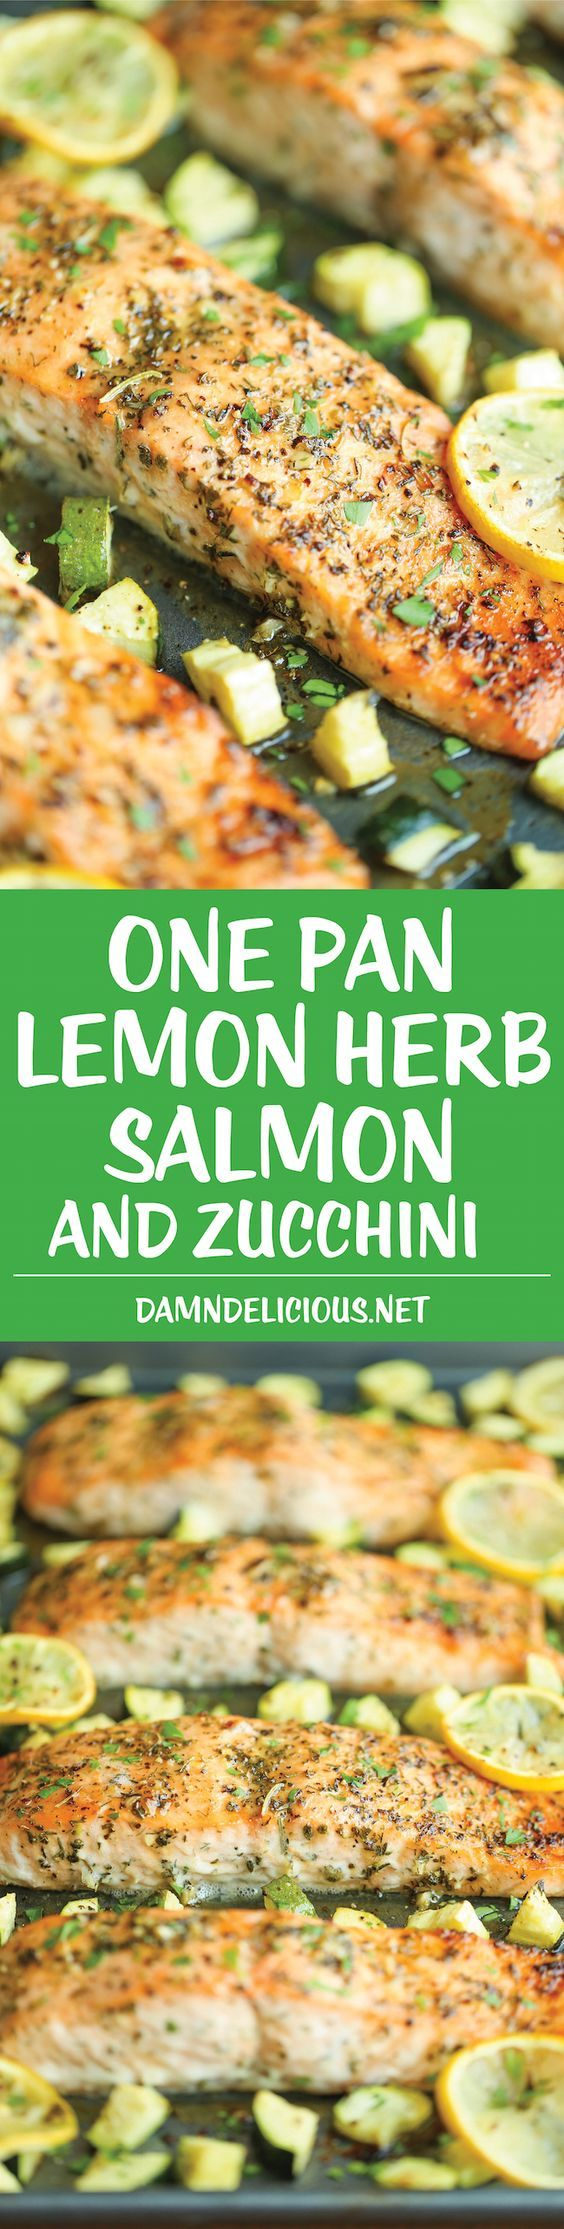 One Pan Lemon Herb Salmon and Zucchini - Quick easy and all made on a single…